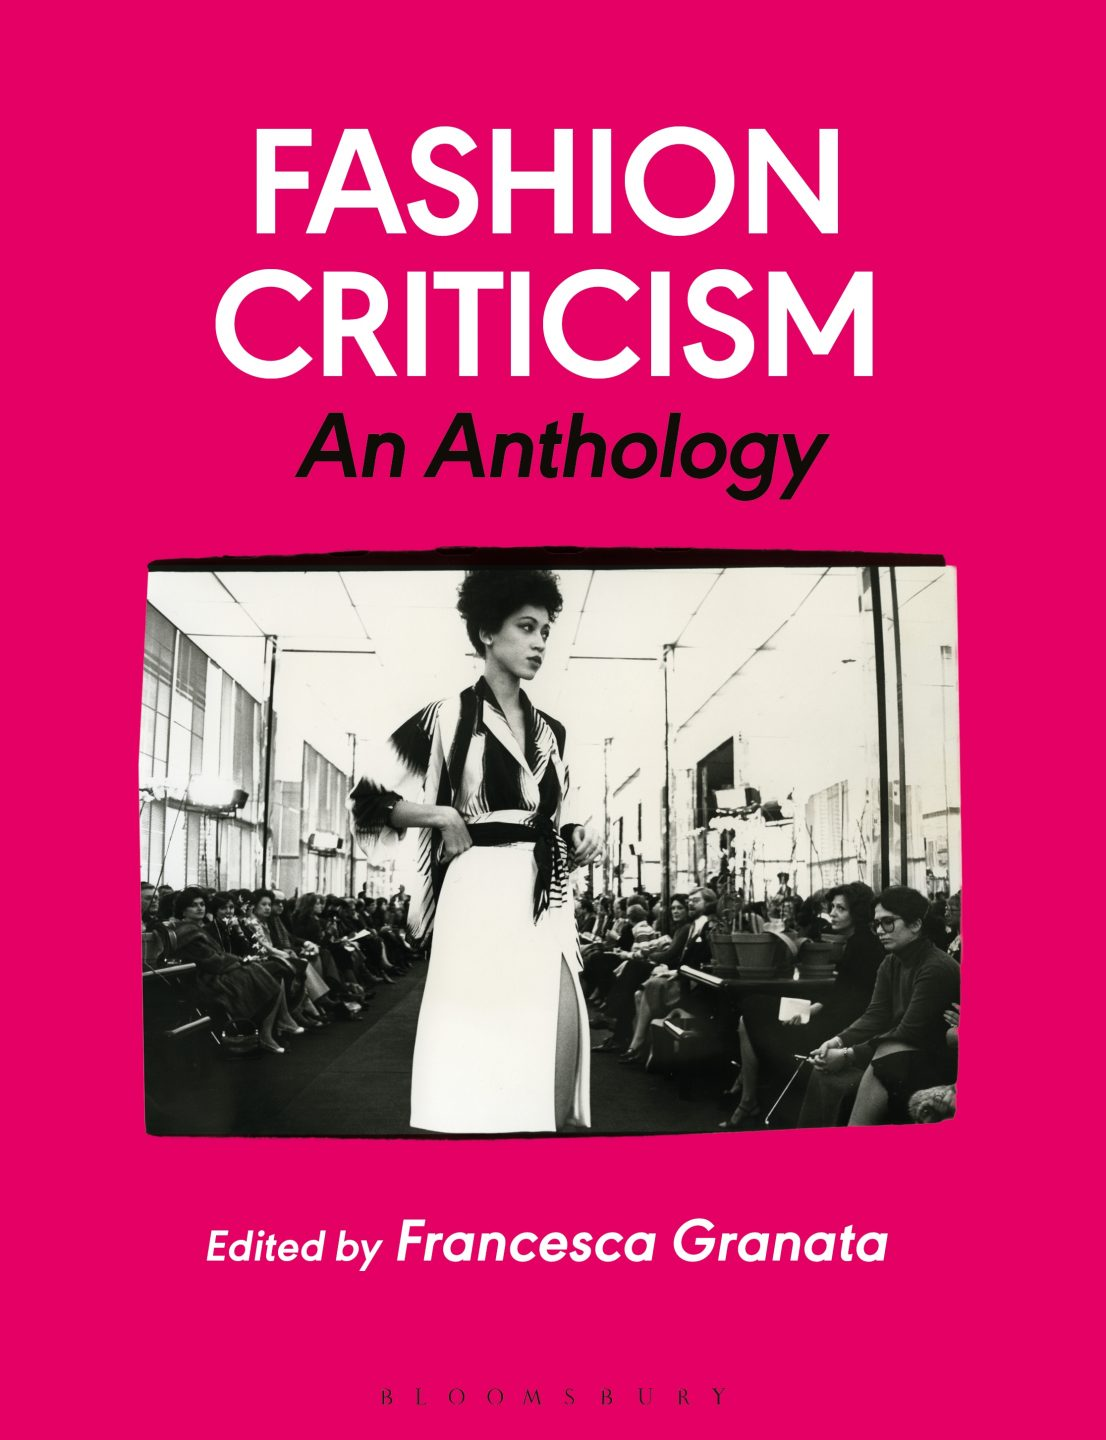 The cover of Fashion Criticism: An Anthology